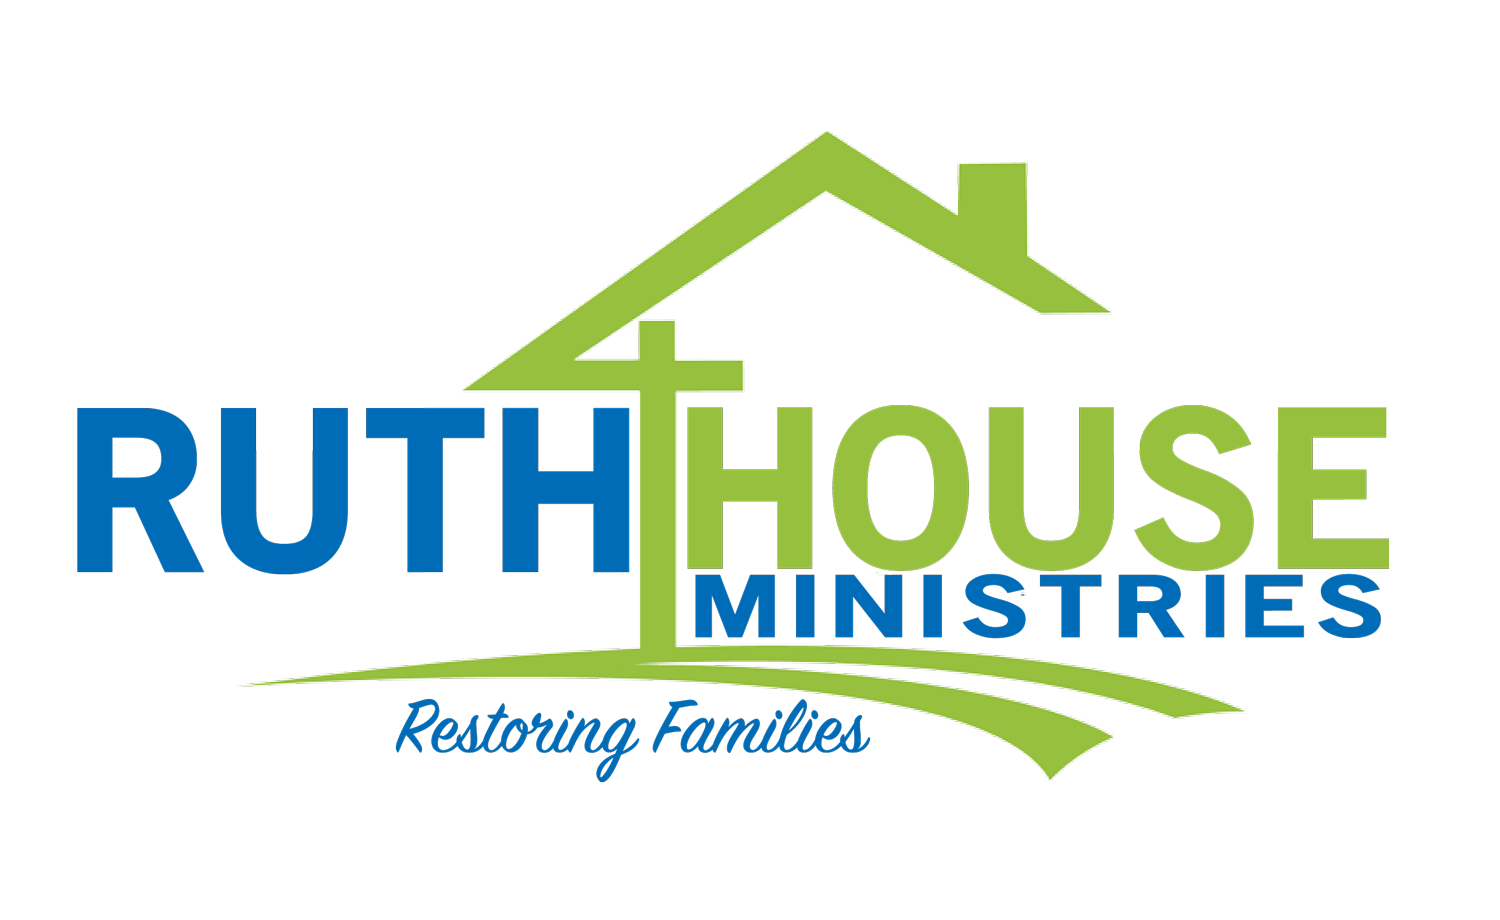 Ruth House Ministries